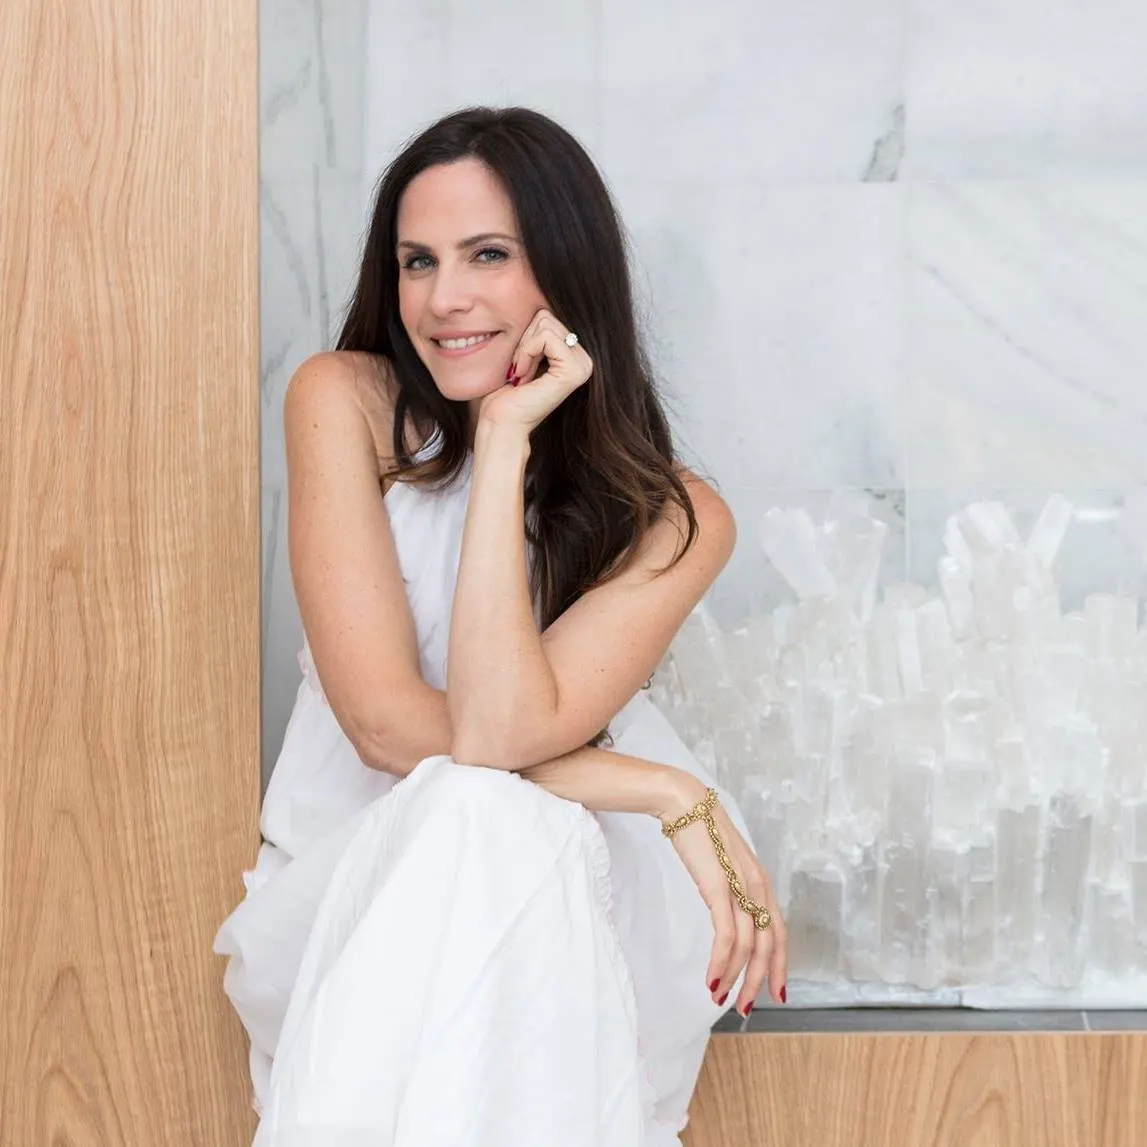 Nikki Ostrower, Founder of NAO and Integrative Nutritionist